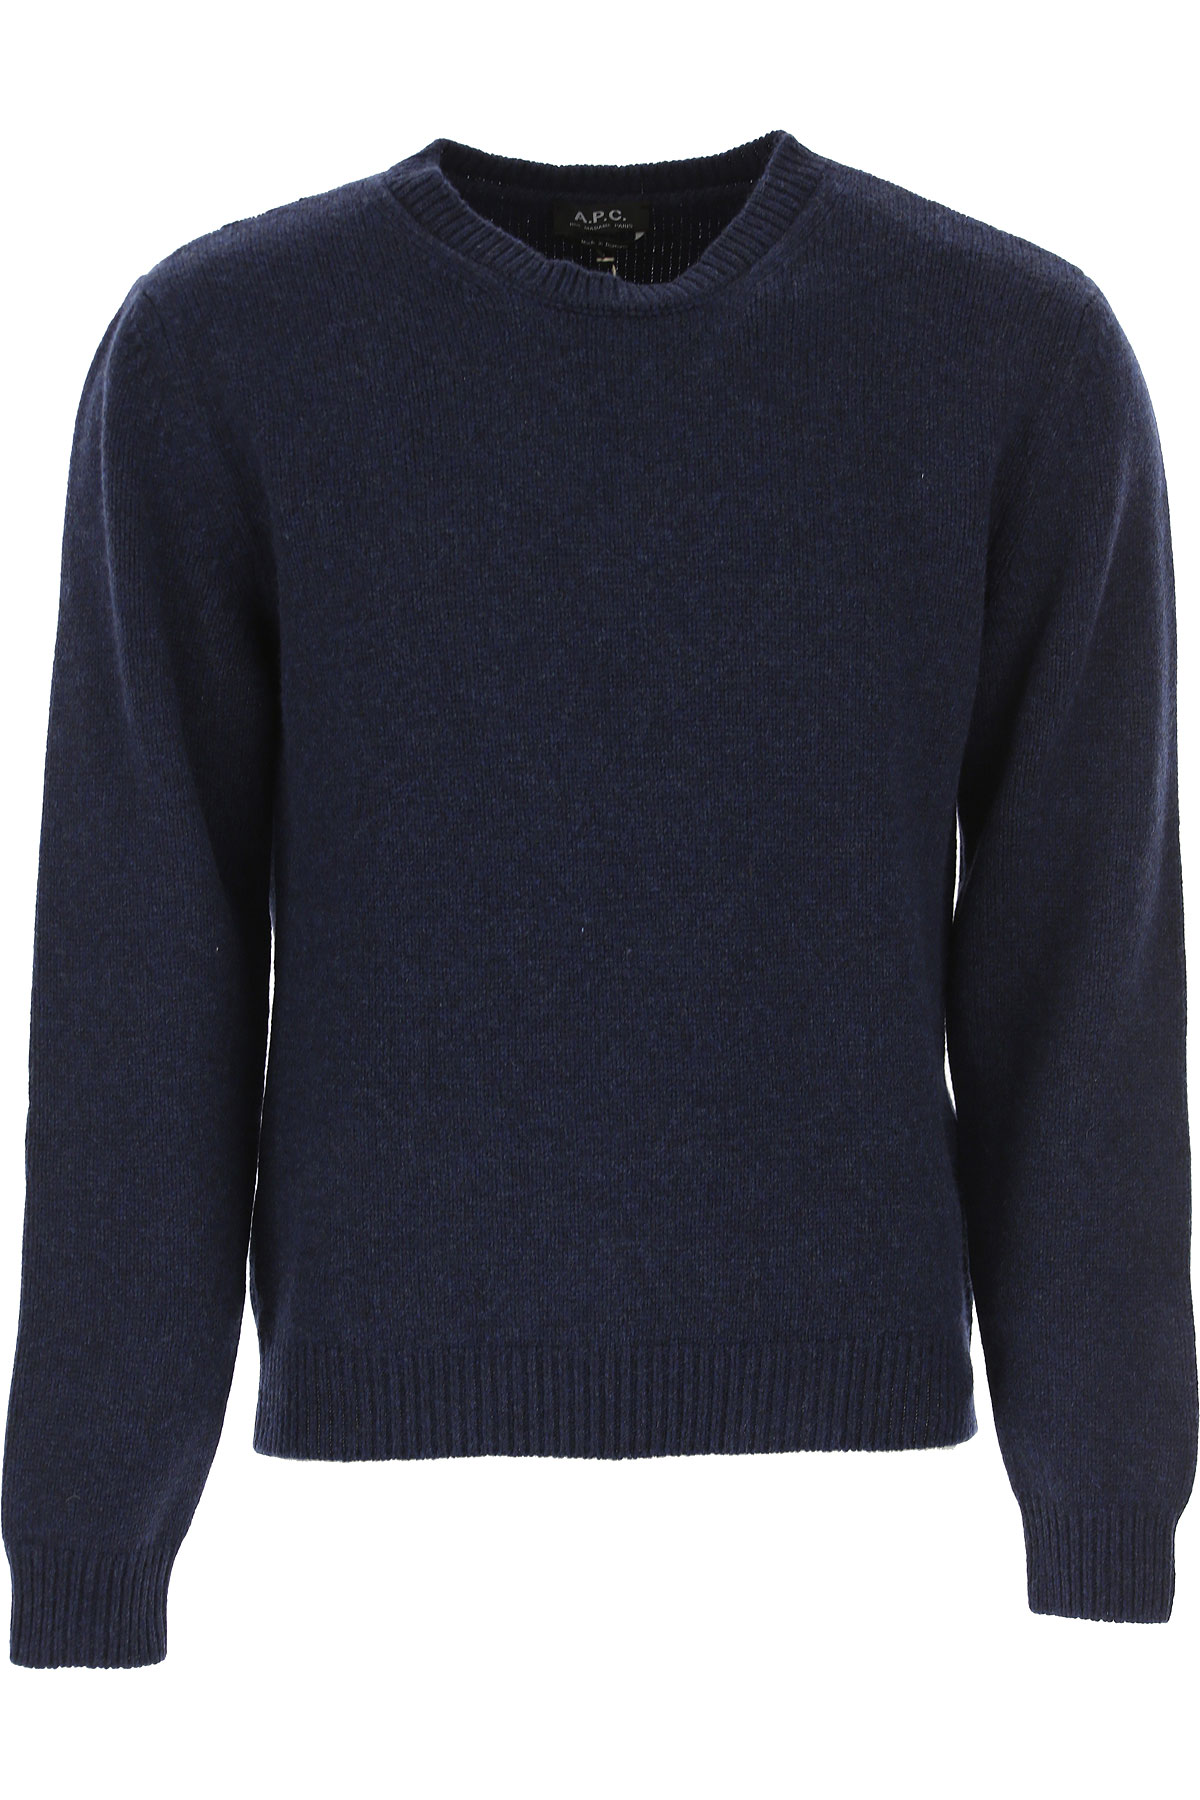 A.P.C Sweater for Men Jumper On Sale, Navy Blue, Wool, 2019, L M S